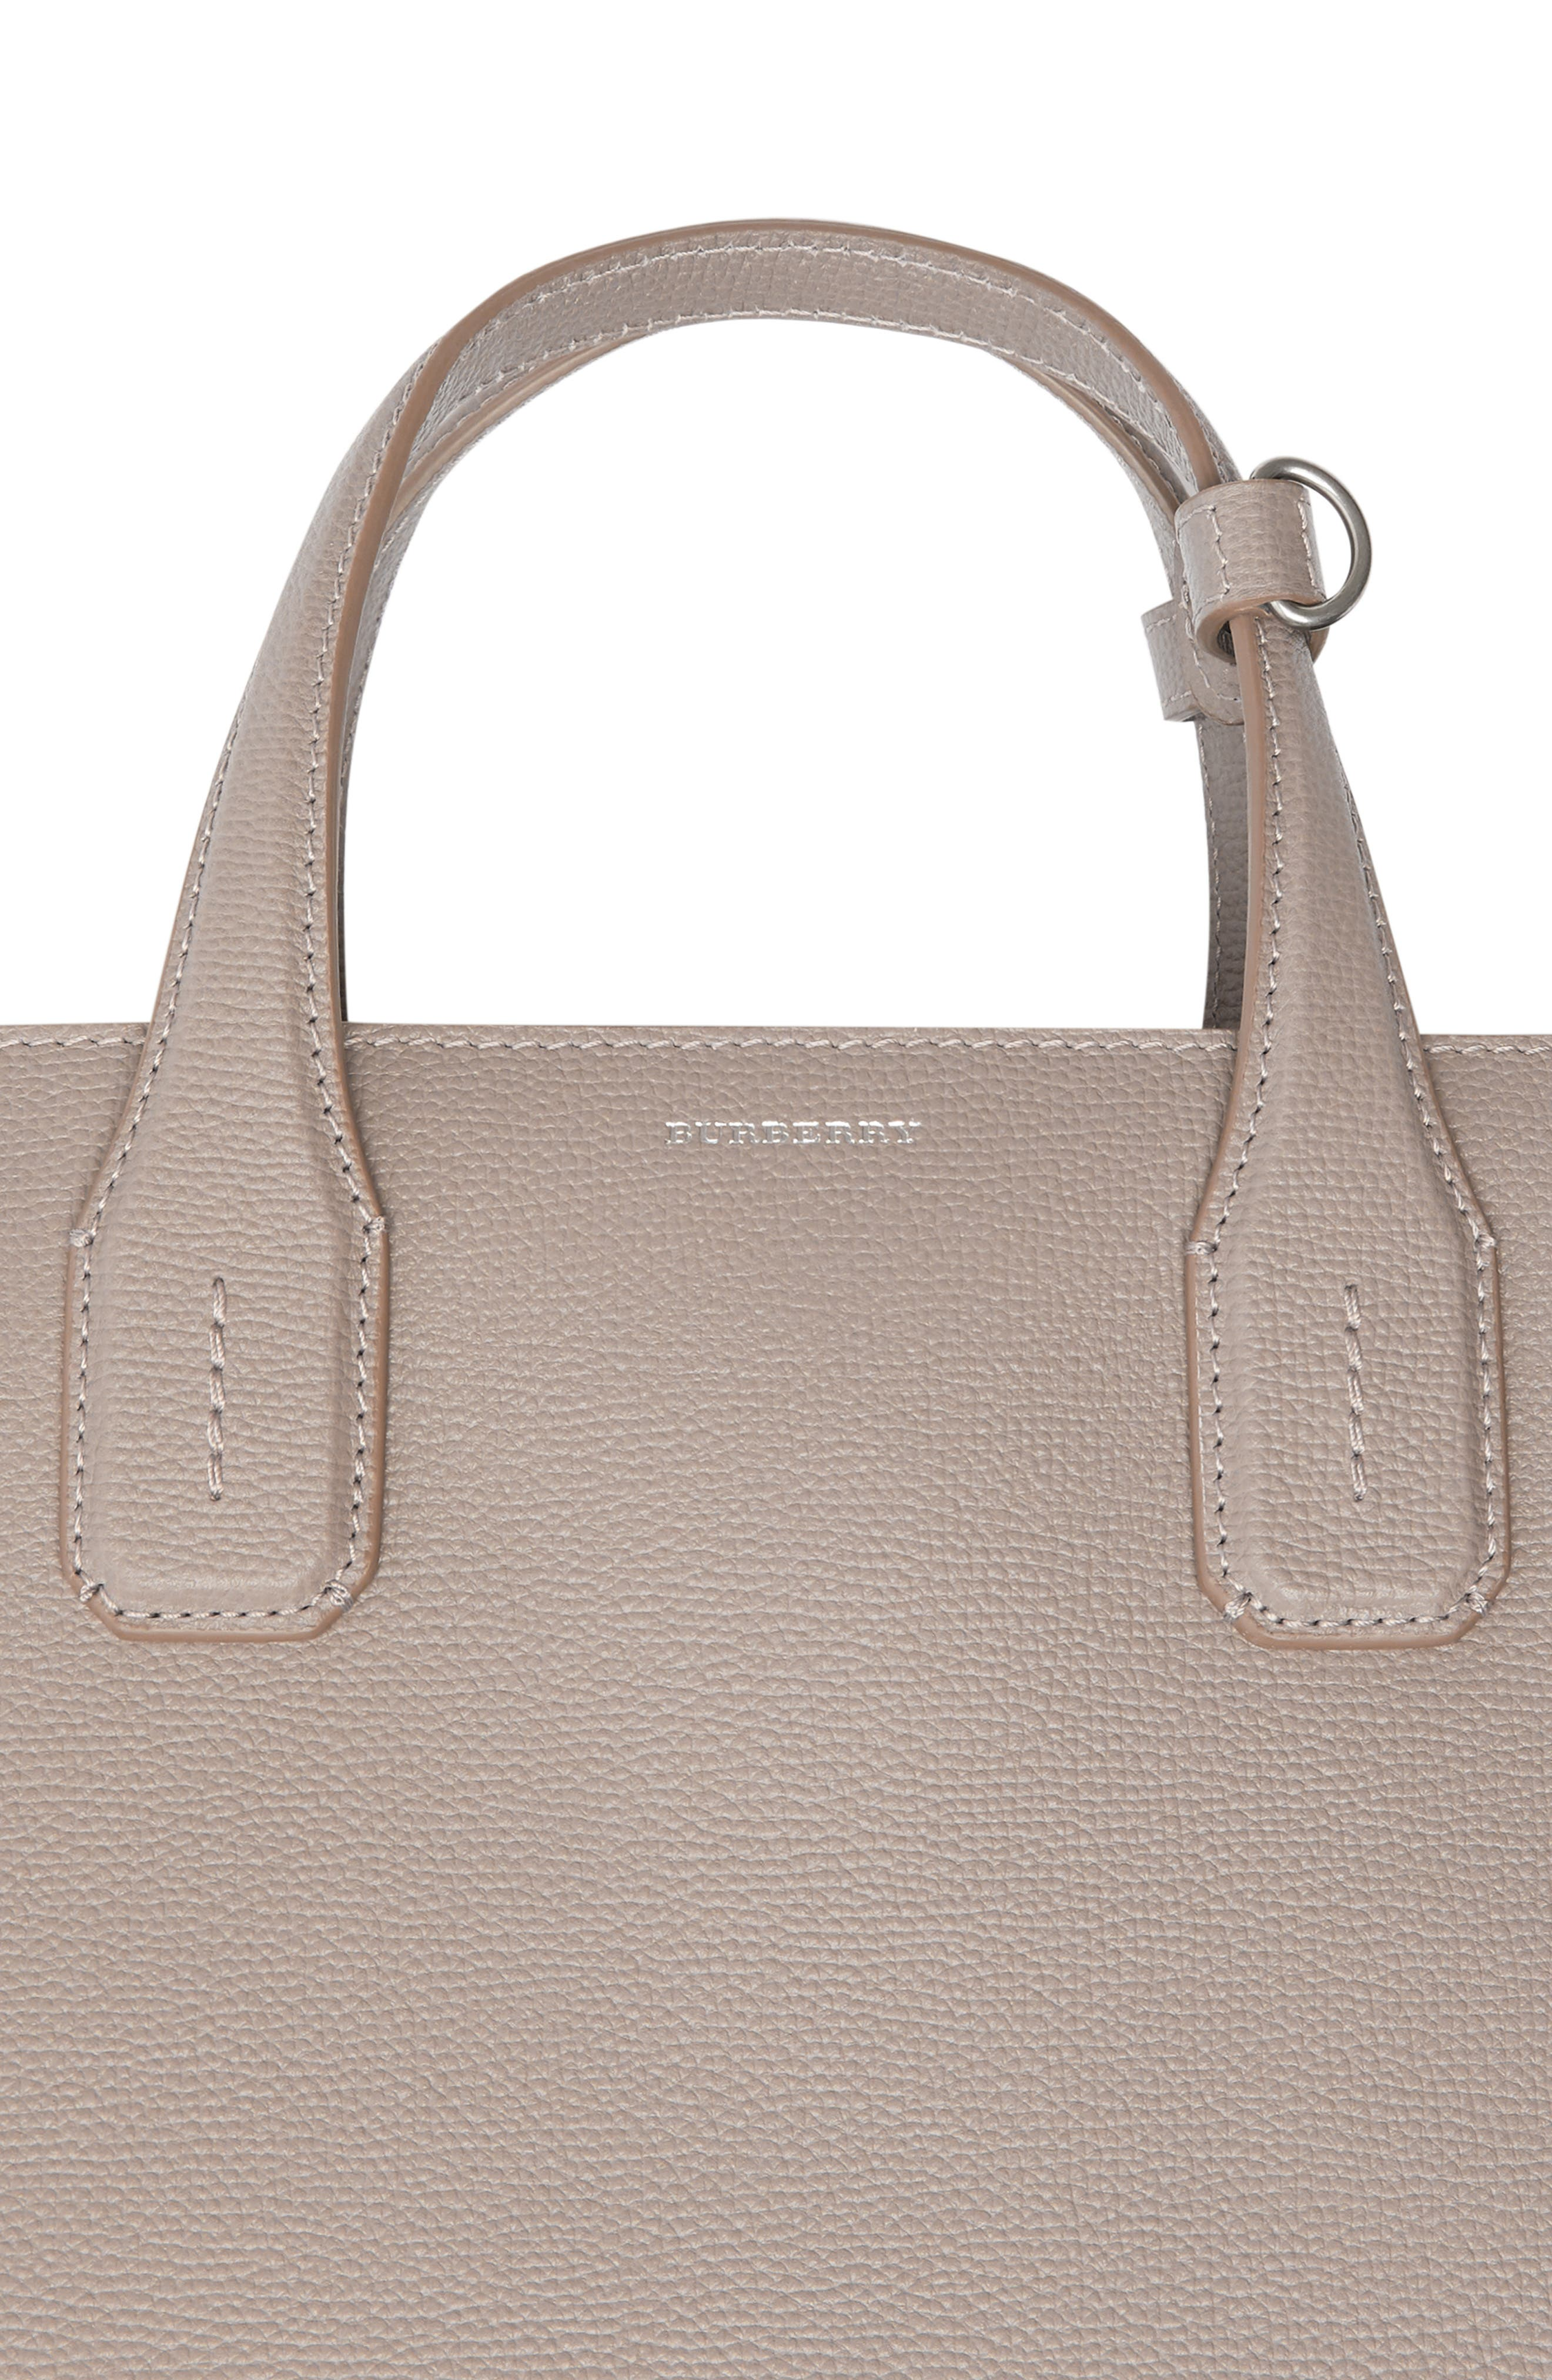 Medium Banner Leather Tote,                             Alternate thumbnail 6, color,                             TAUPE BROWN